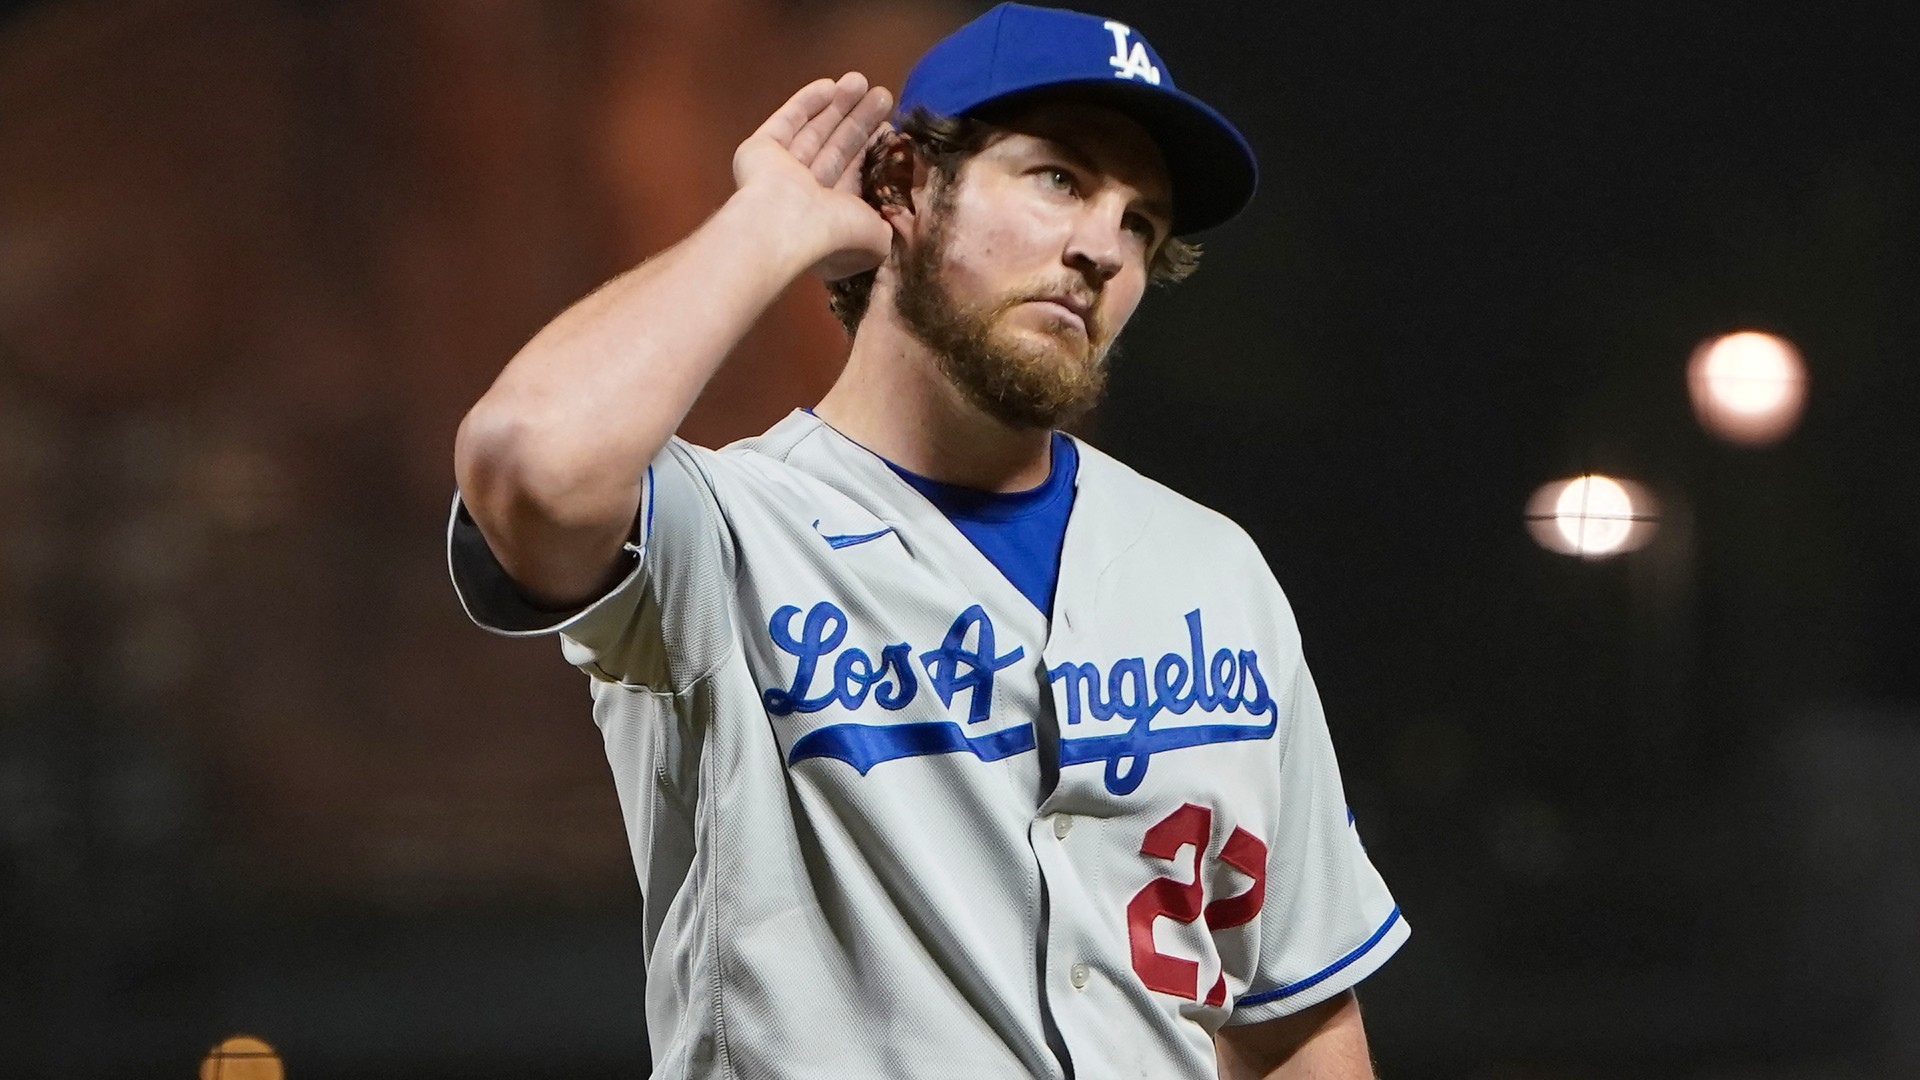 Trevor Bauer masters being a heel in his first Dodgers-Giants rivalry game  | Sporting News